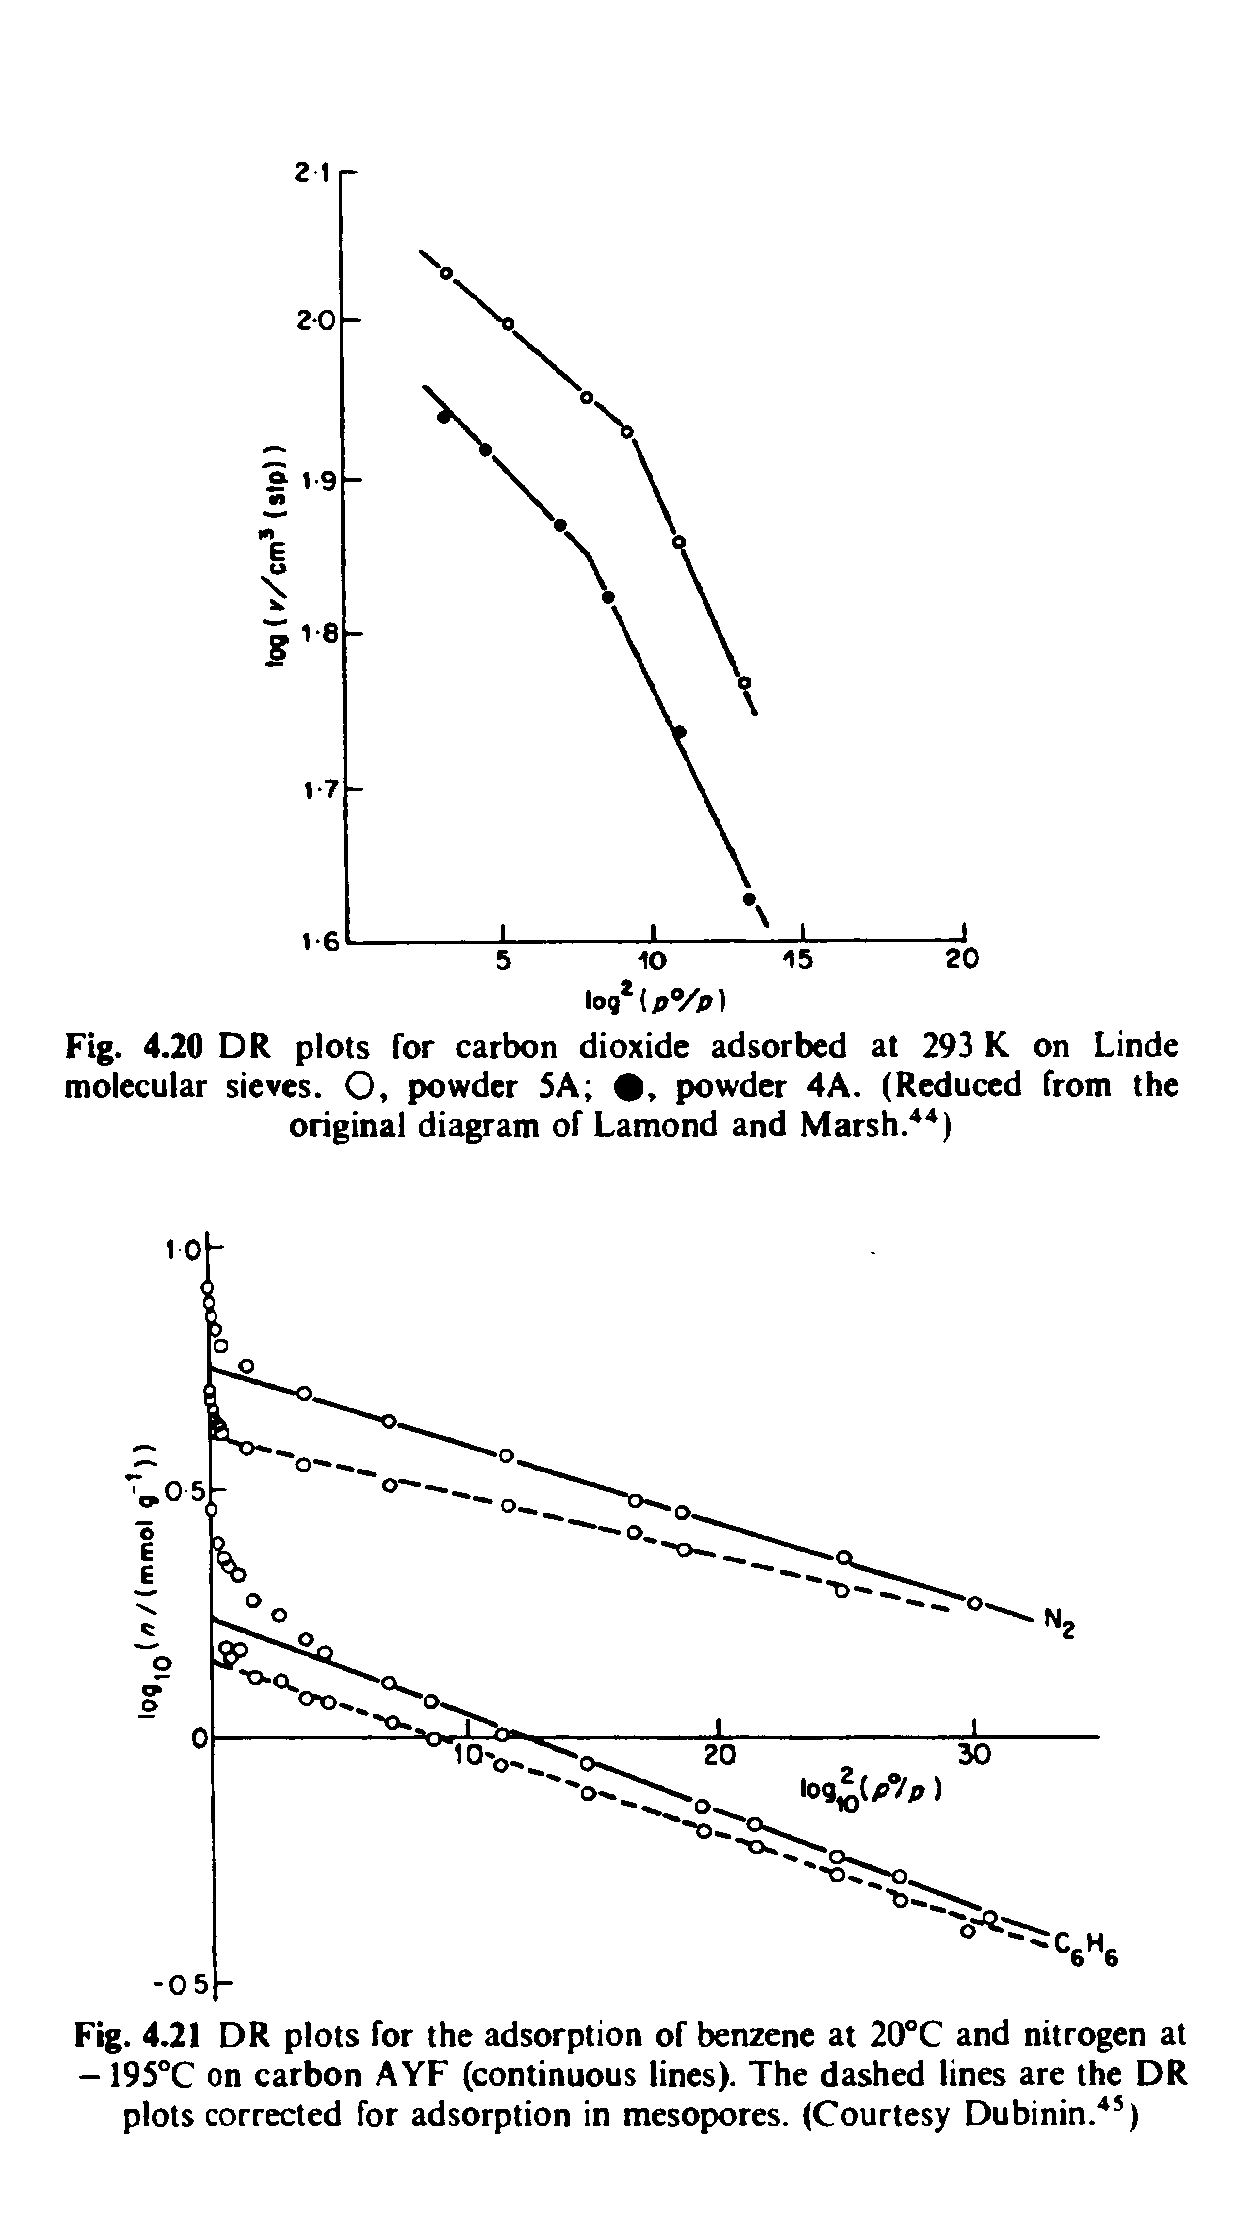 Fig. 4.20 DR plots for carbon dioxide adsorbed at 293 K on Linde molecular sieves. O, powder SA , powder 4A. (Reduced from the original diagram of Lamond and Marsh. )...